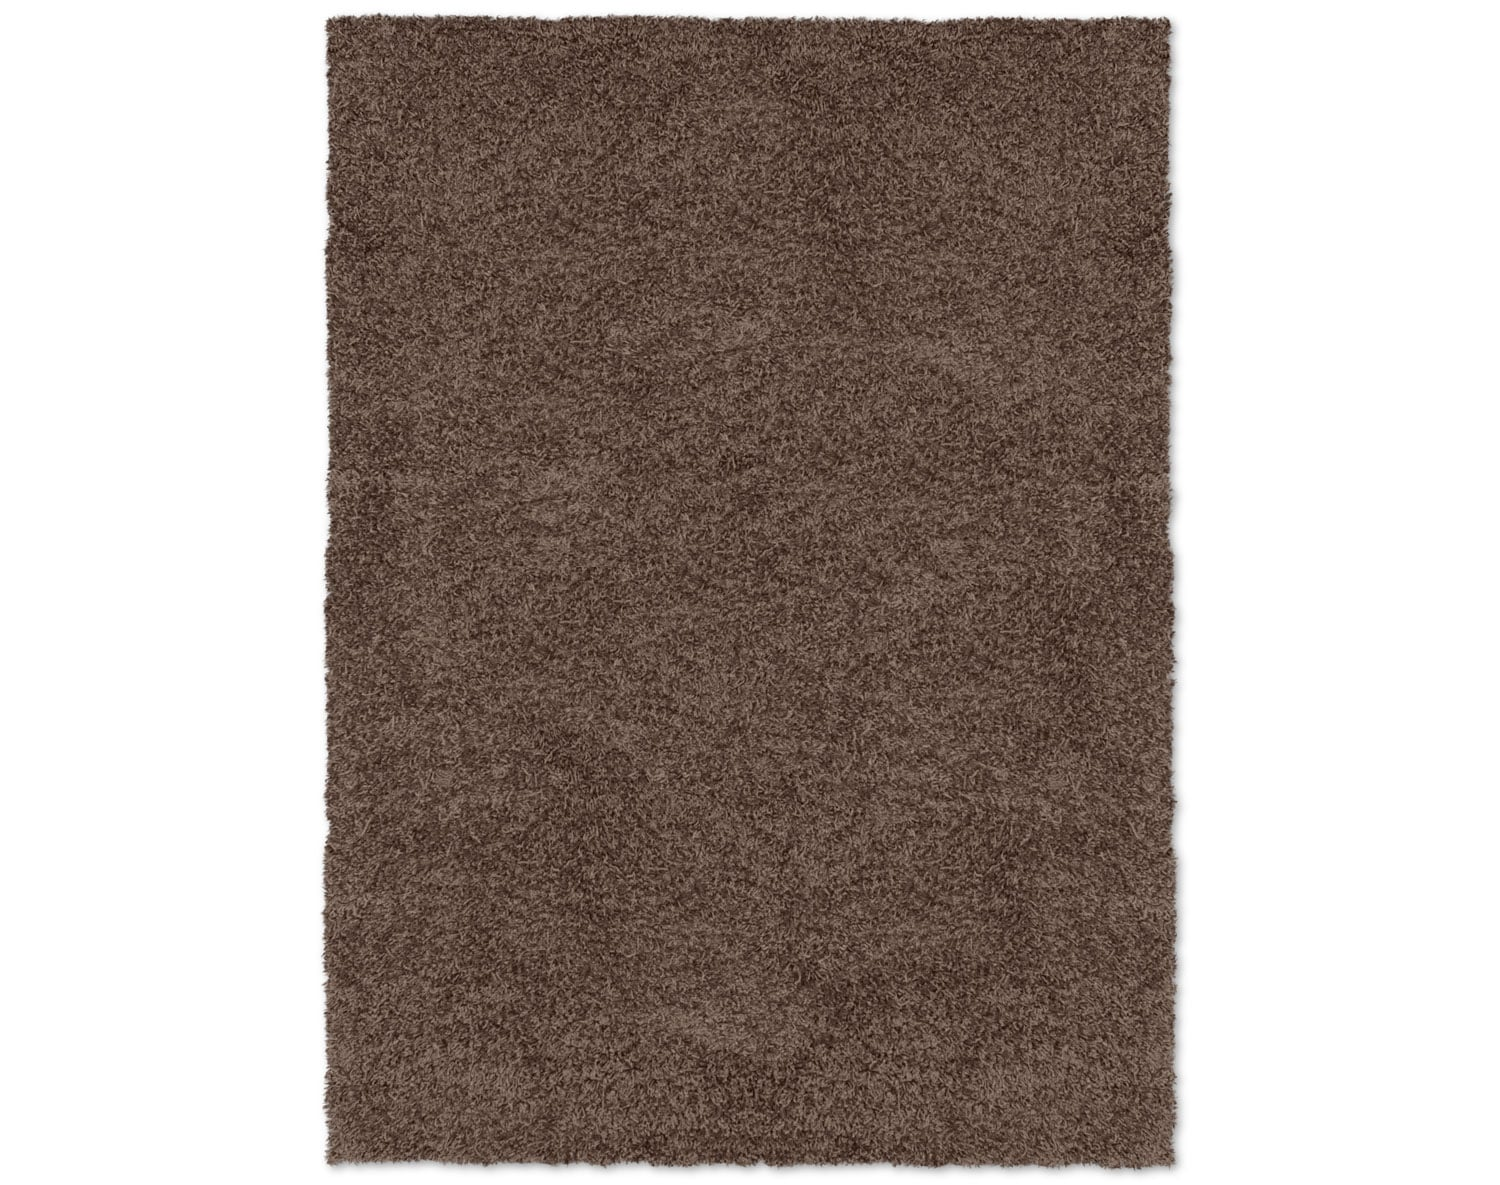 The Comfort Chocolate Shag Rug Collection